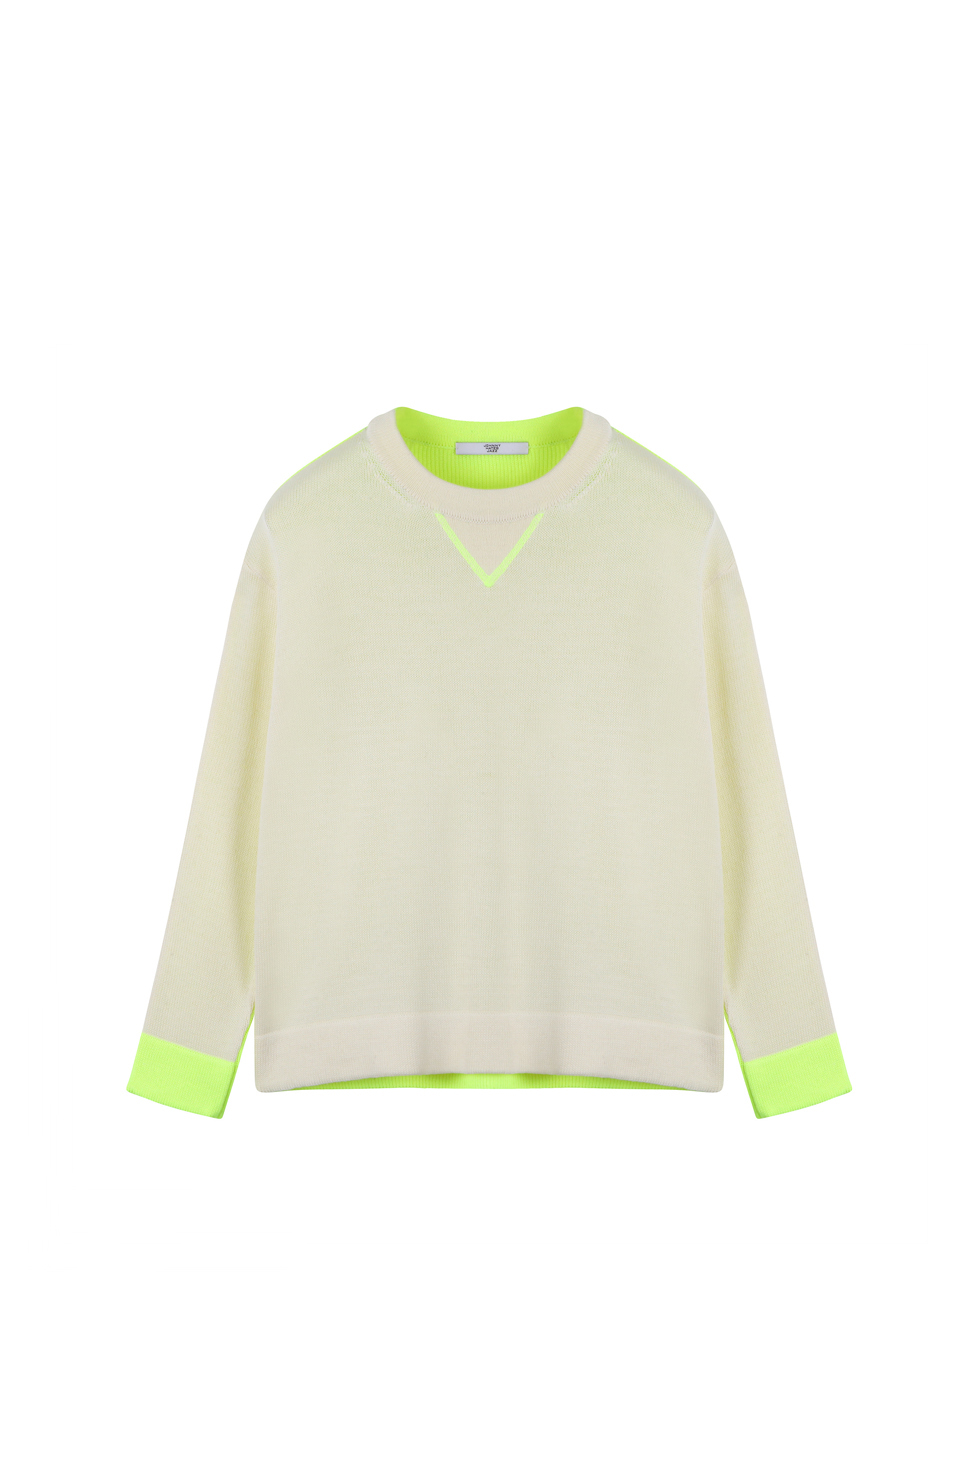 CONTRASTING CROP KNIT - IVORY